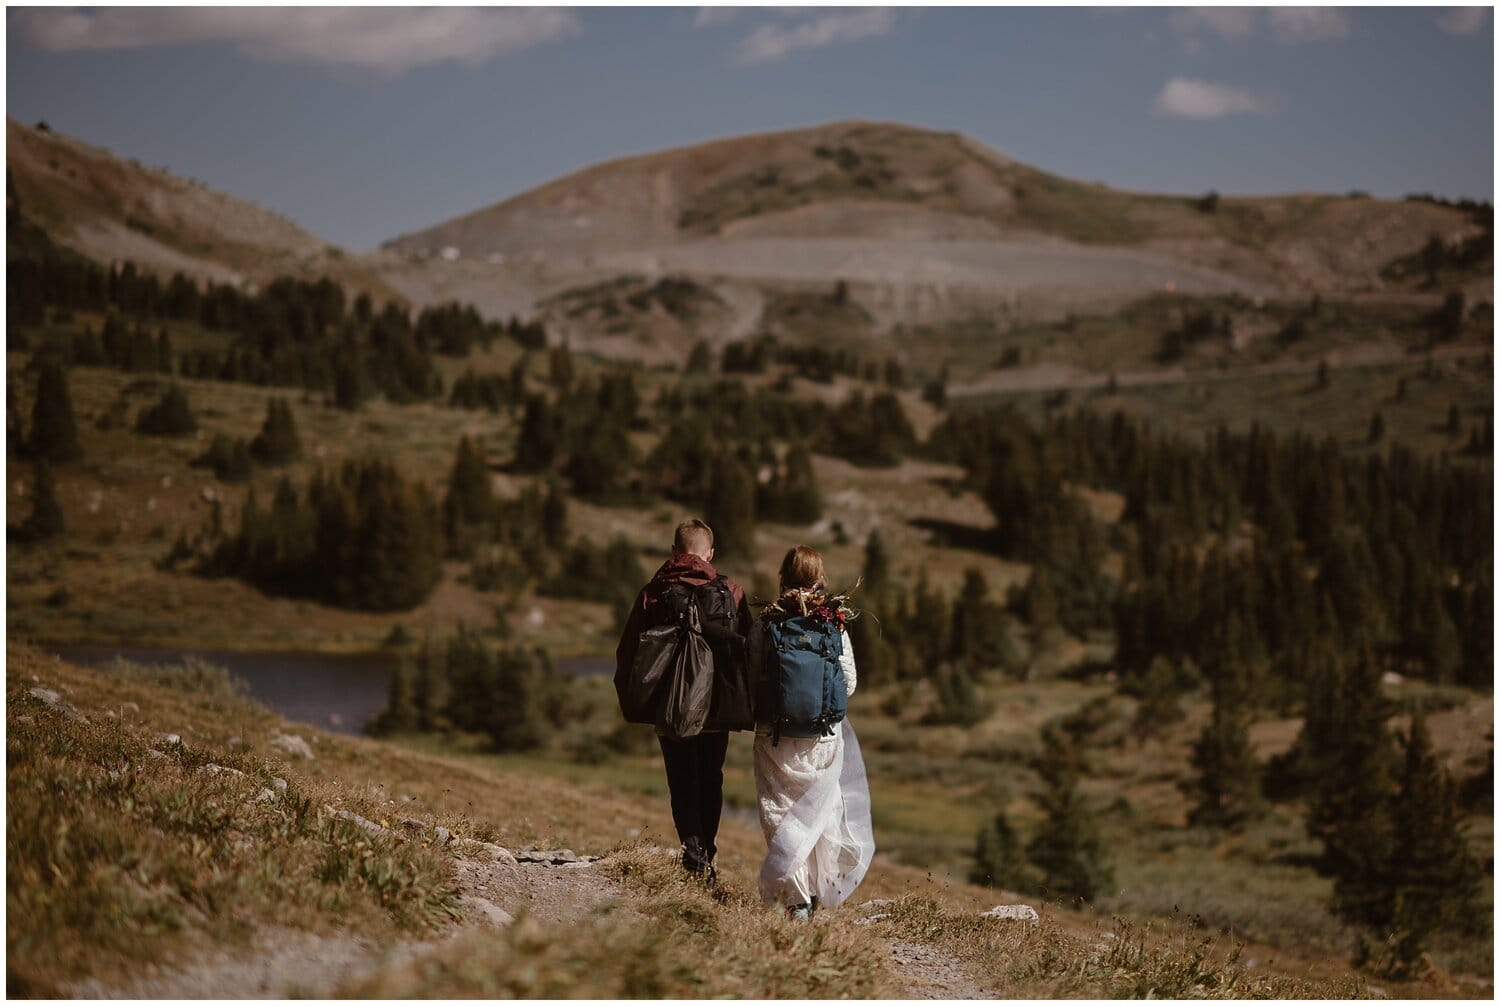 Bride and groom wear backpacks while hiking on their wedding day.